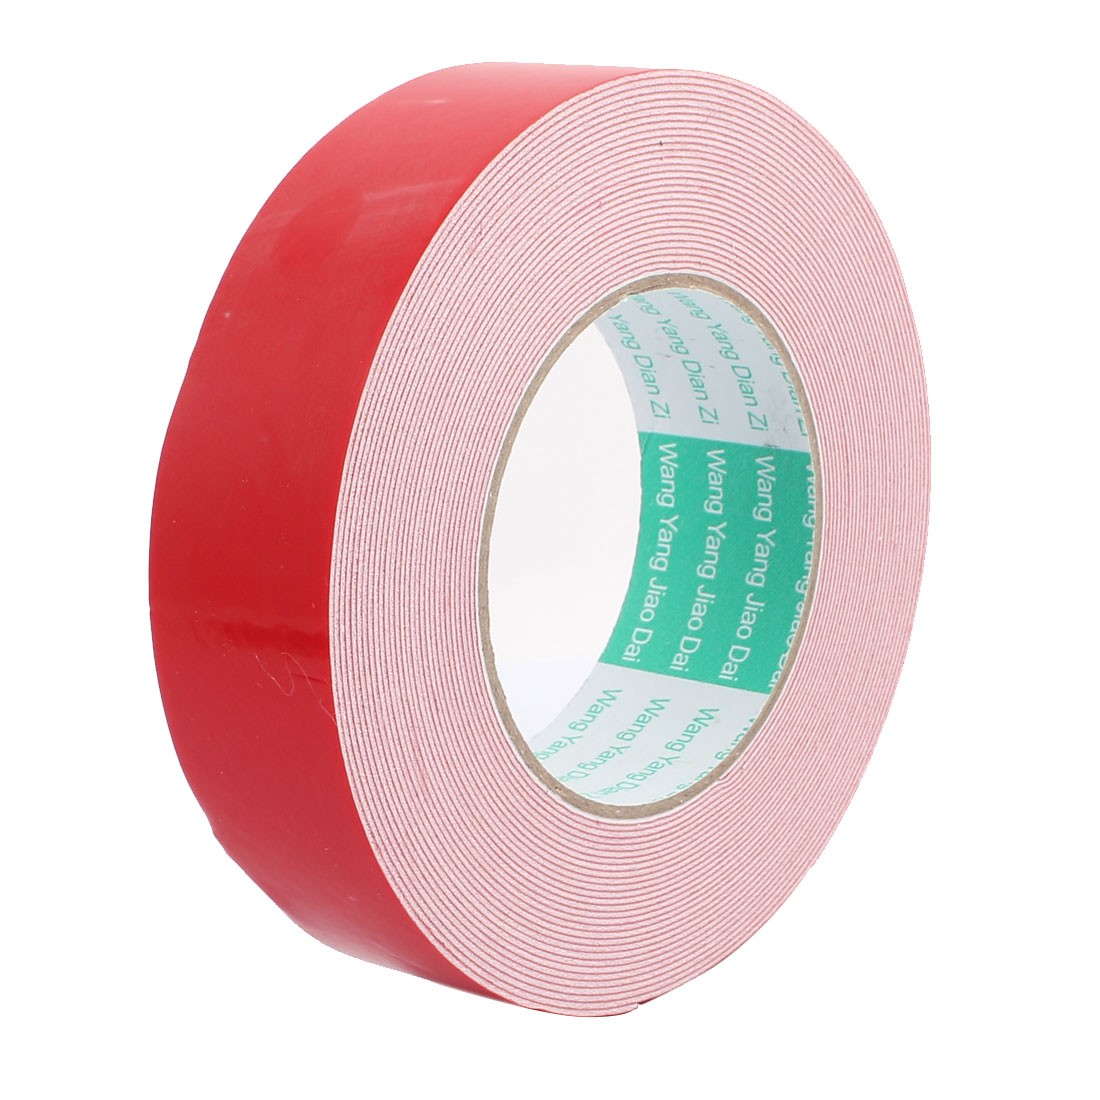 10M 35mm x 1mm Dual-side Adhesive Shockproof Sponge Foam Tape Red White